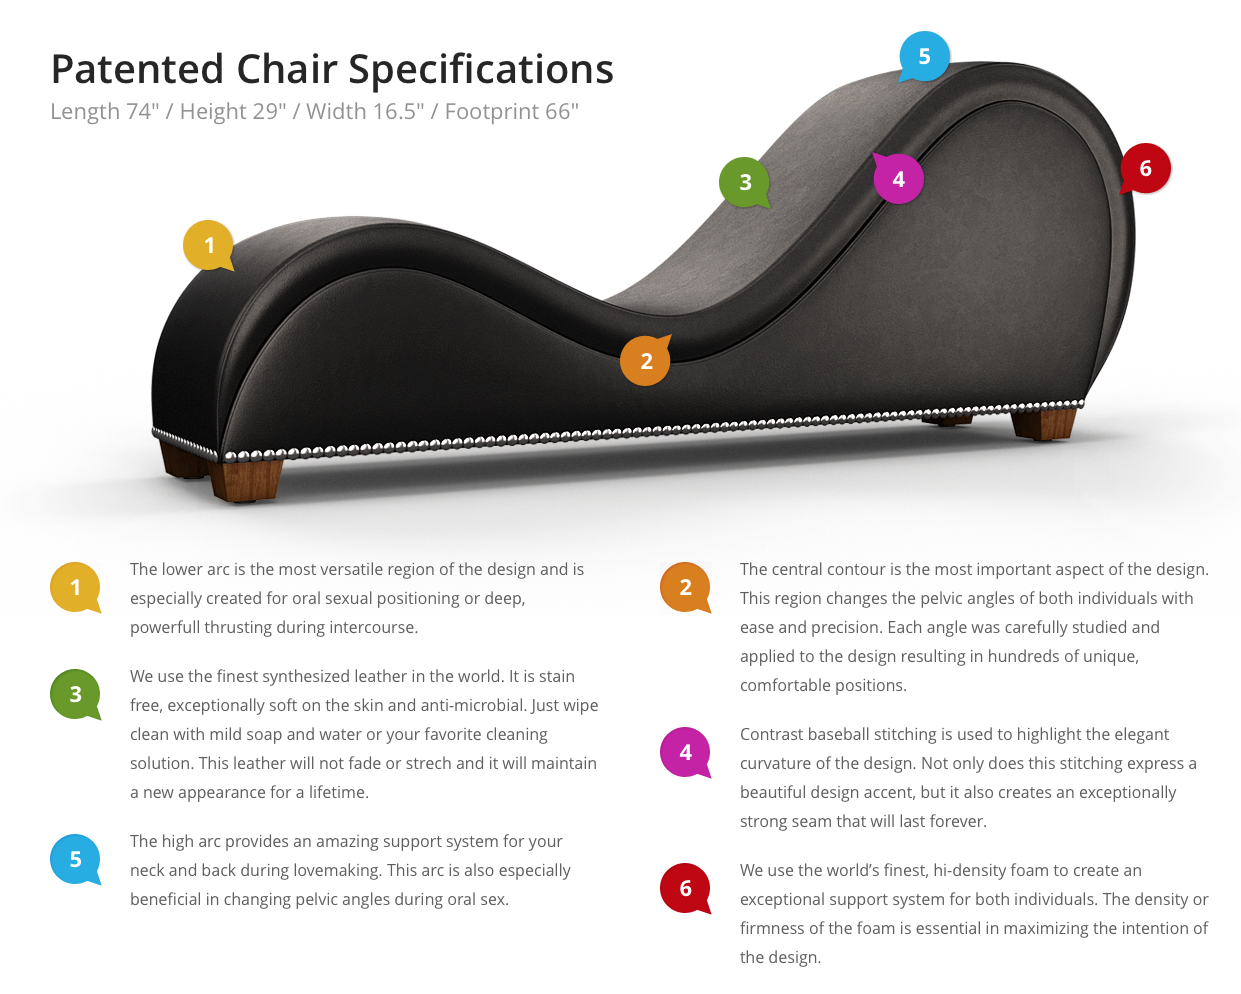 Tantra chair sexual positions - Tantra Chair Design